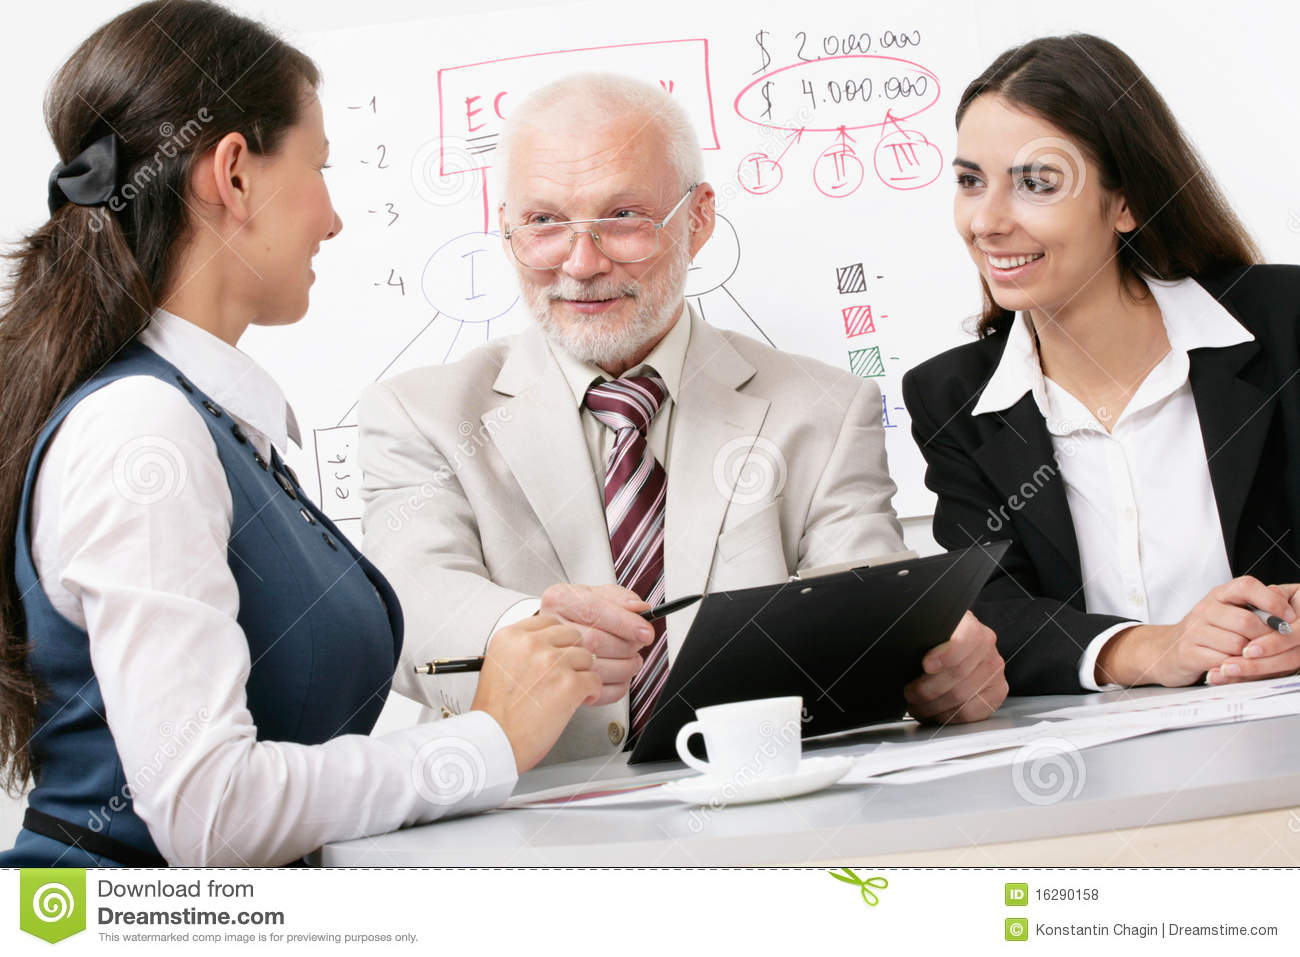 Business People Royalty Free Stock Photos - Image: 16290158: dreamstime.com/royalty-free-stock-photos-business-people-image16290158